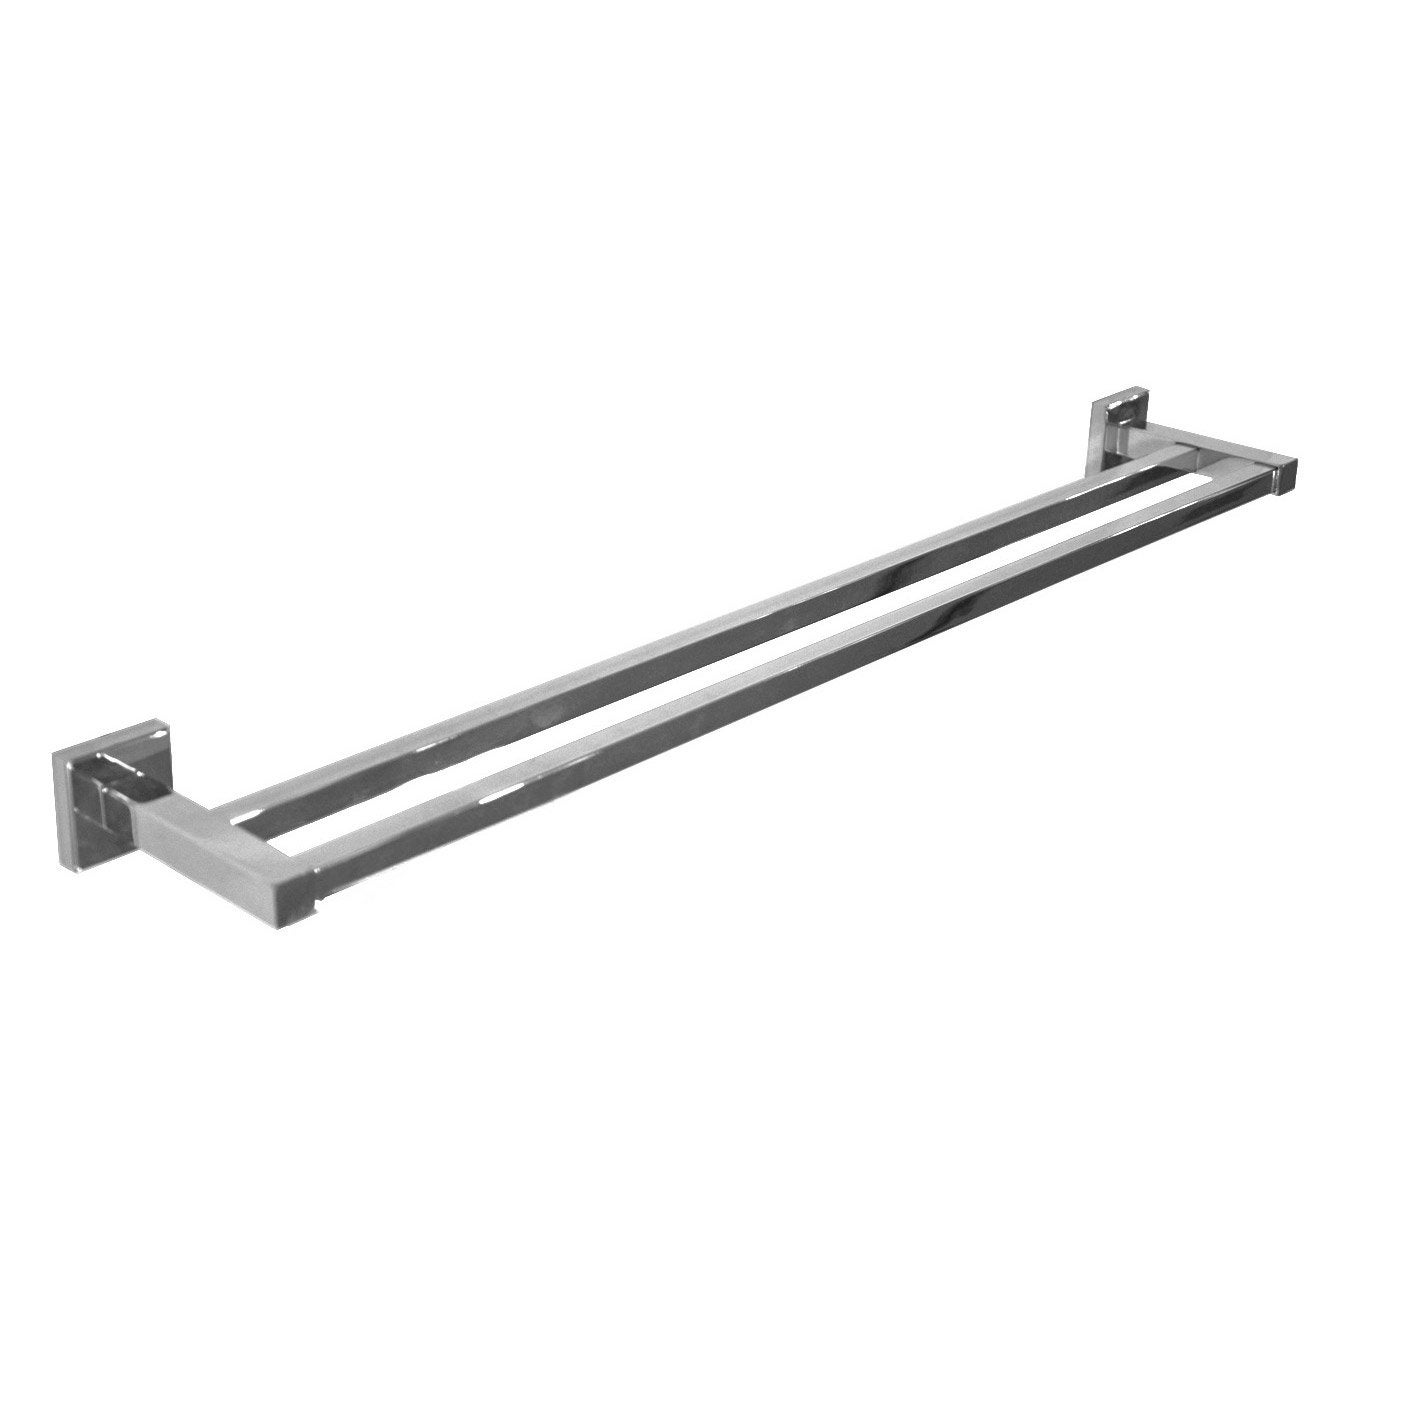 Porte serviettes 2 barres fixes quaddro chrom leroy merlin - Ensemble salle de bain leroy merlin ...